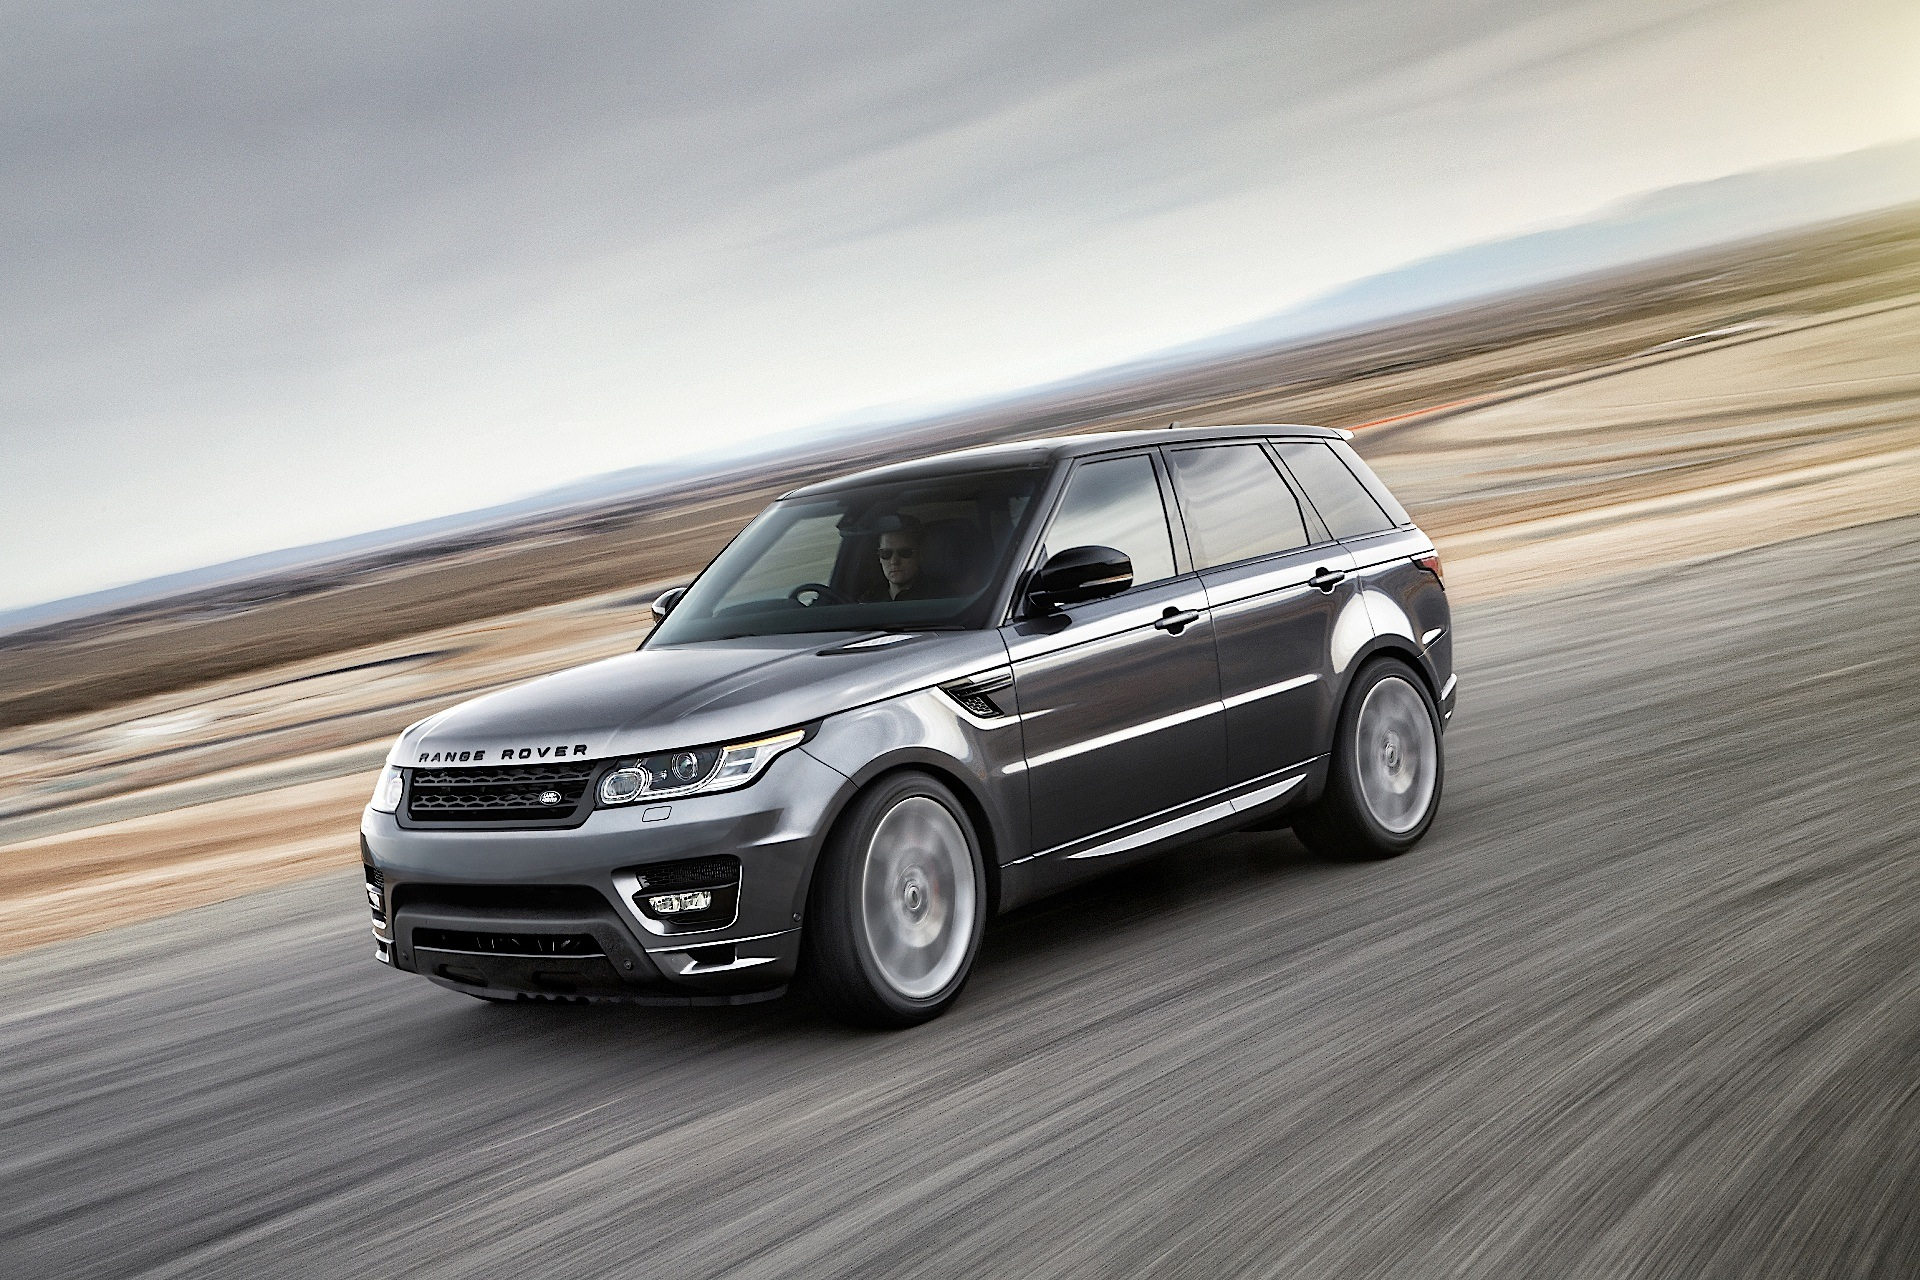 land rover range rover sport specs 2013 2014 2015 2016 2017 autoevolution. Black Bedroom Furniture Sets. Home Design Ideas